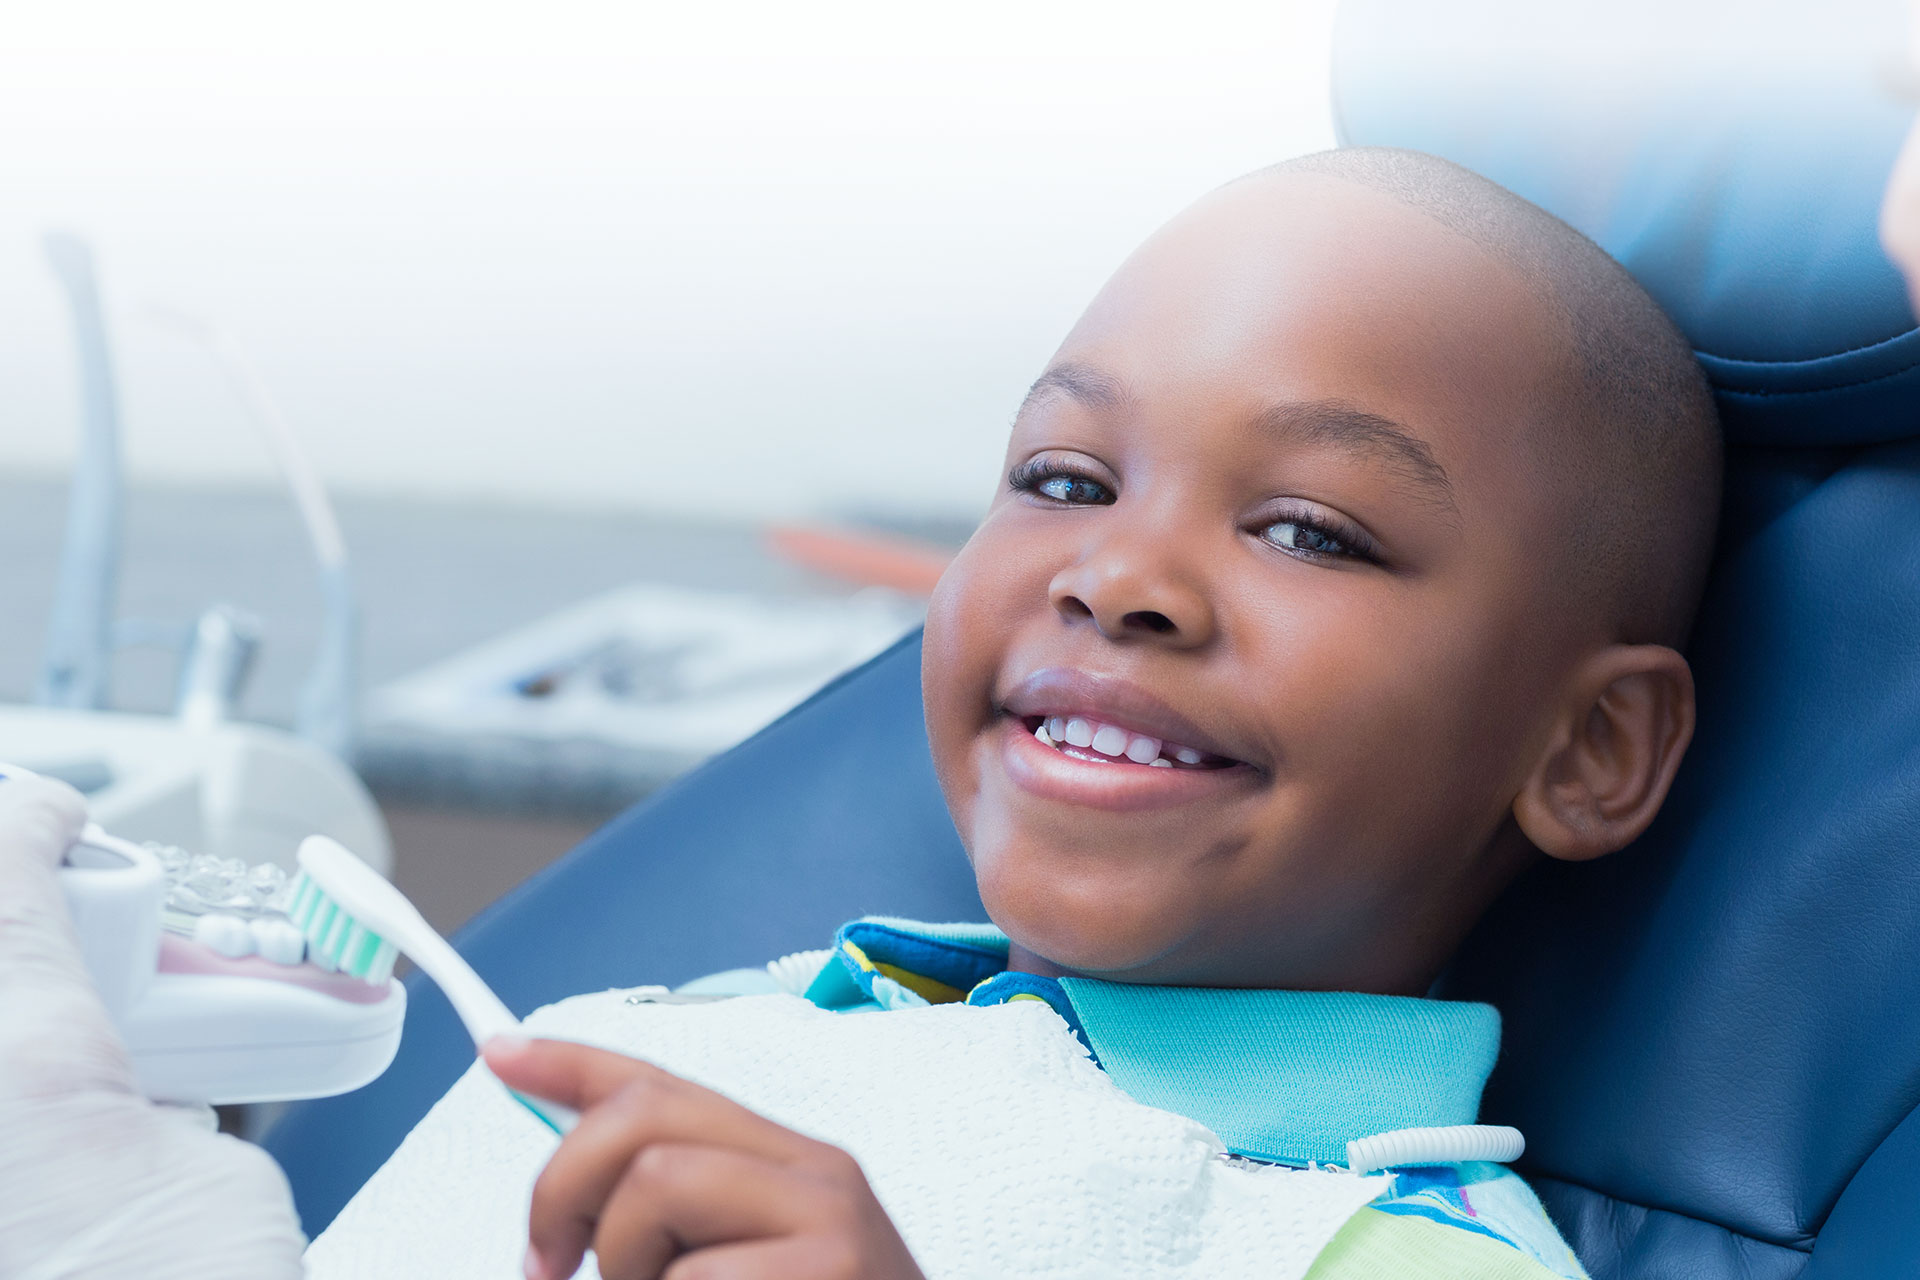 Boy in dental chair